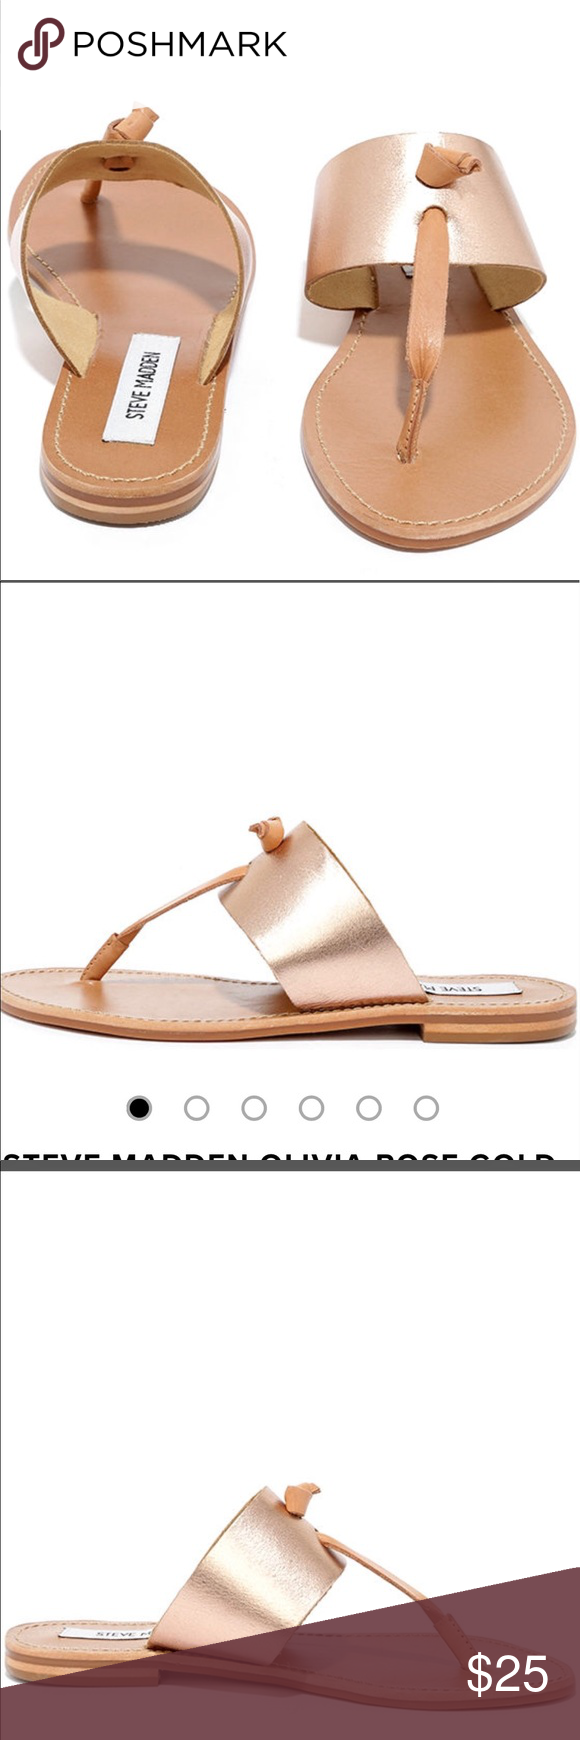 17aa9d3f5cf4 Steve Madden Women s Gold Sandals Steve Maddens Women s Olivia Rose Hold  Sandals. Never worn. Still in Box. Leather thong strap knotted accent and  nonskid ...